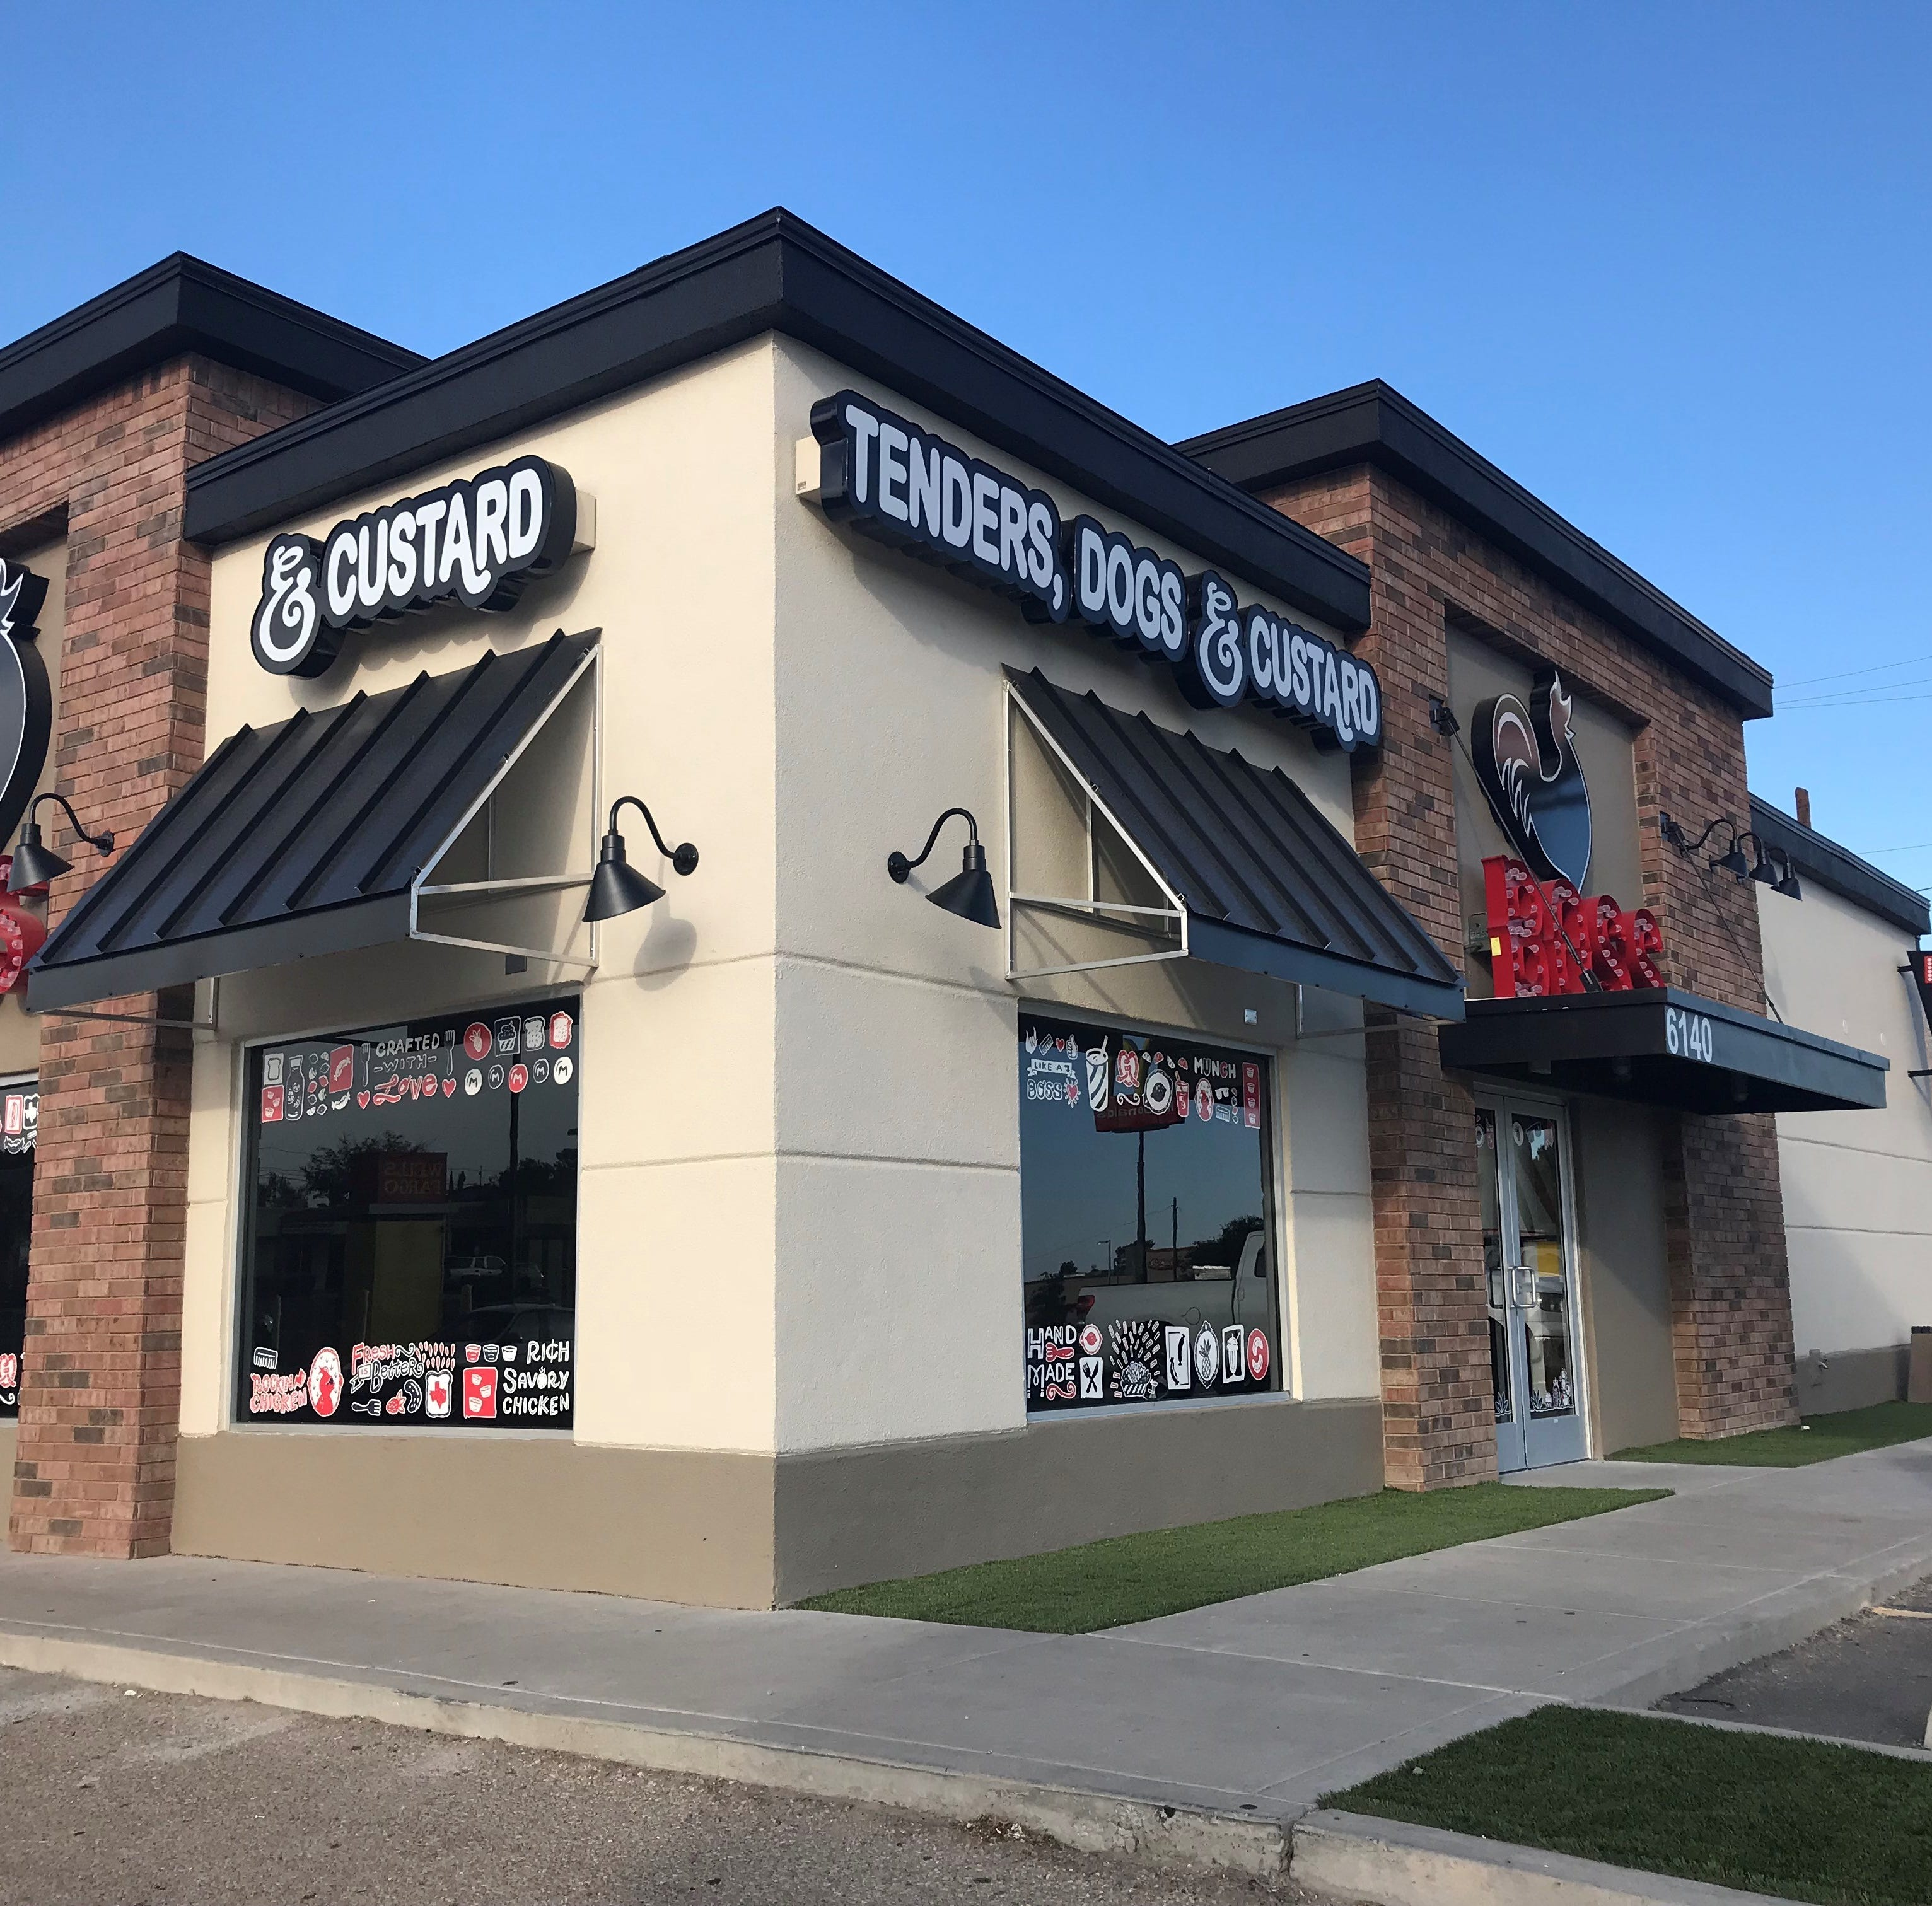 Boss chicken opens 6th restaurant location in El Paso on West Side